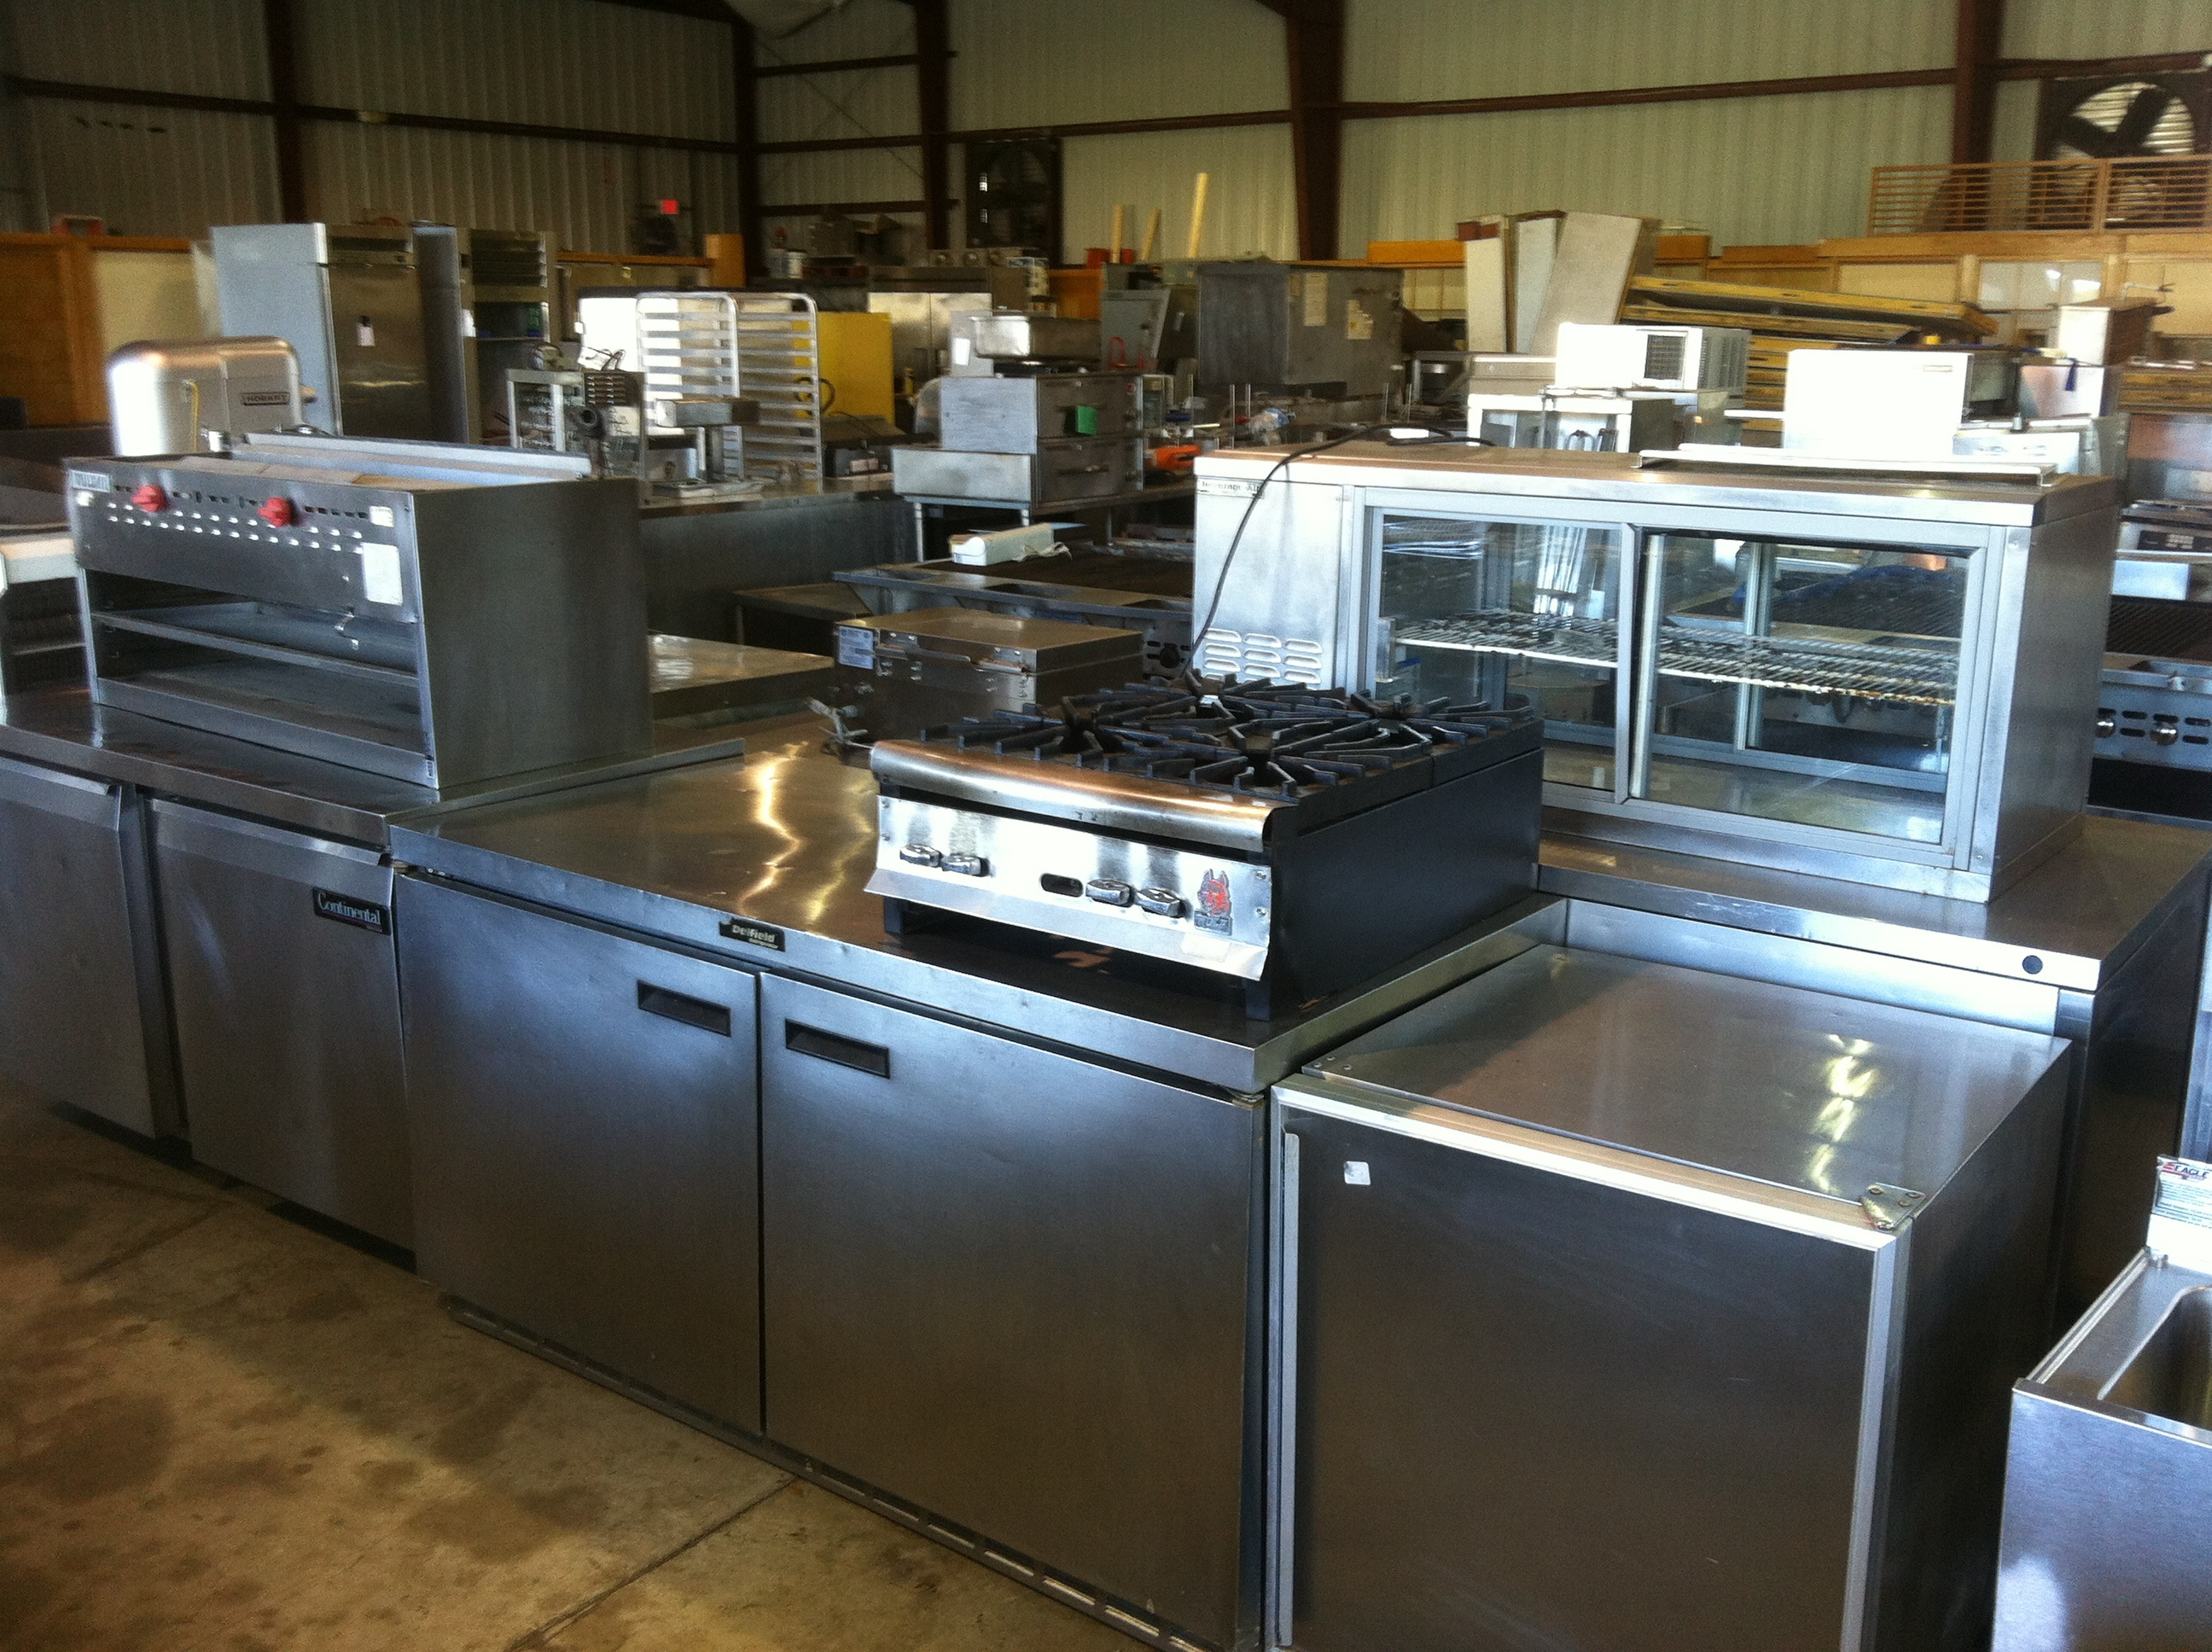 Mexican Restaurant Kitchen Equipment comrestaurant kitchen equipment ~ crowdbuild for .